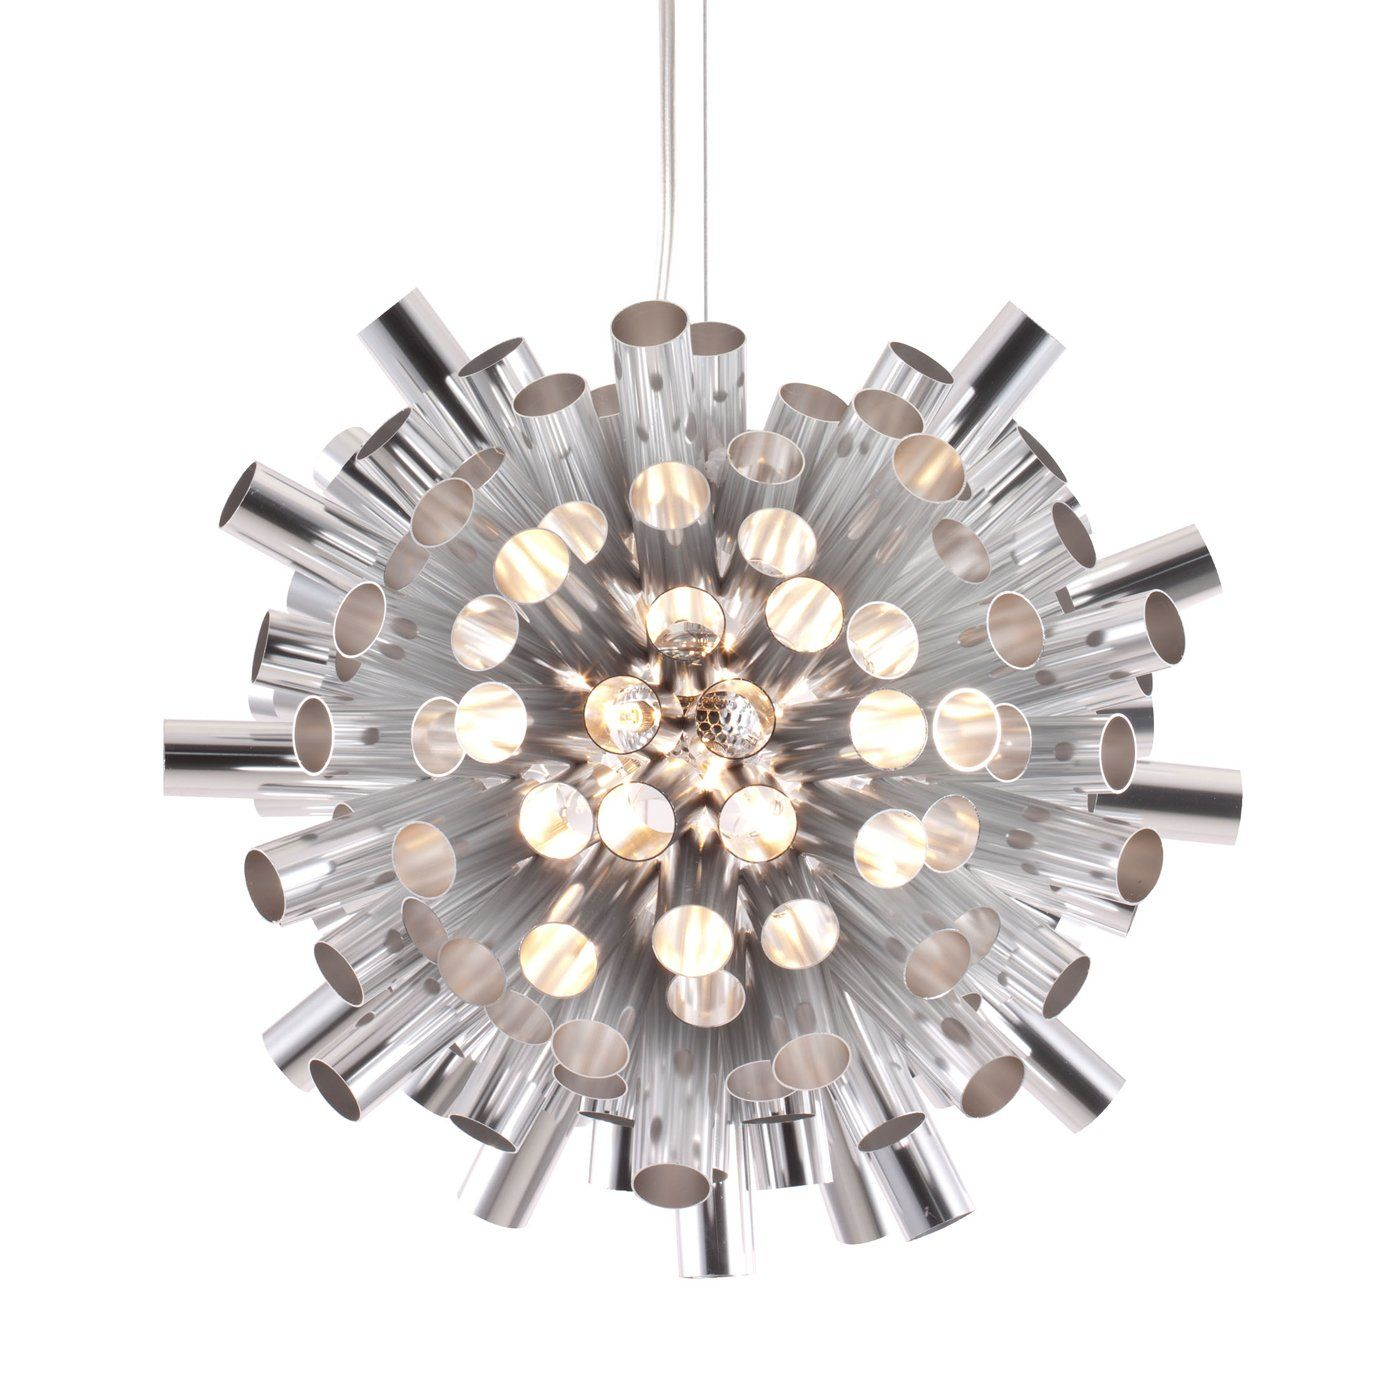 Zuo Modern Lighting Canada Zuo Modern 50083 Extravagance Ceiling Lamp At Lowe S Canada